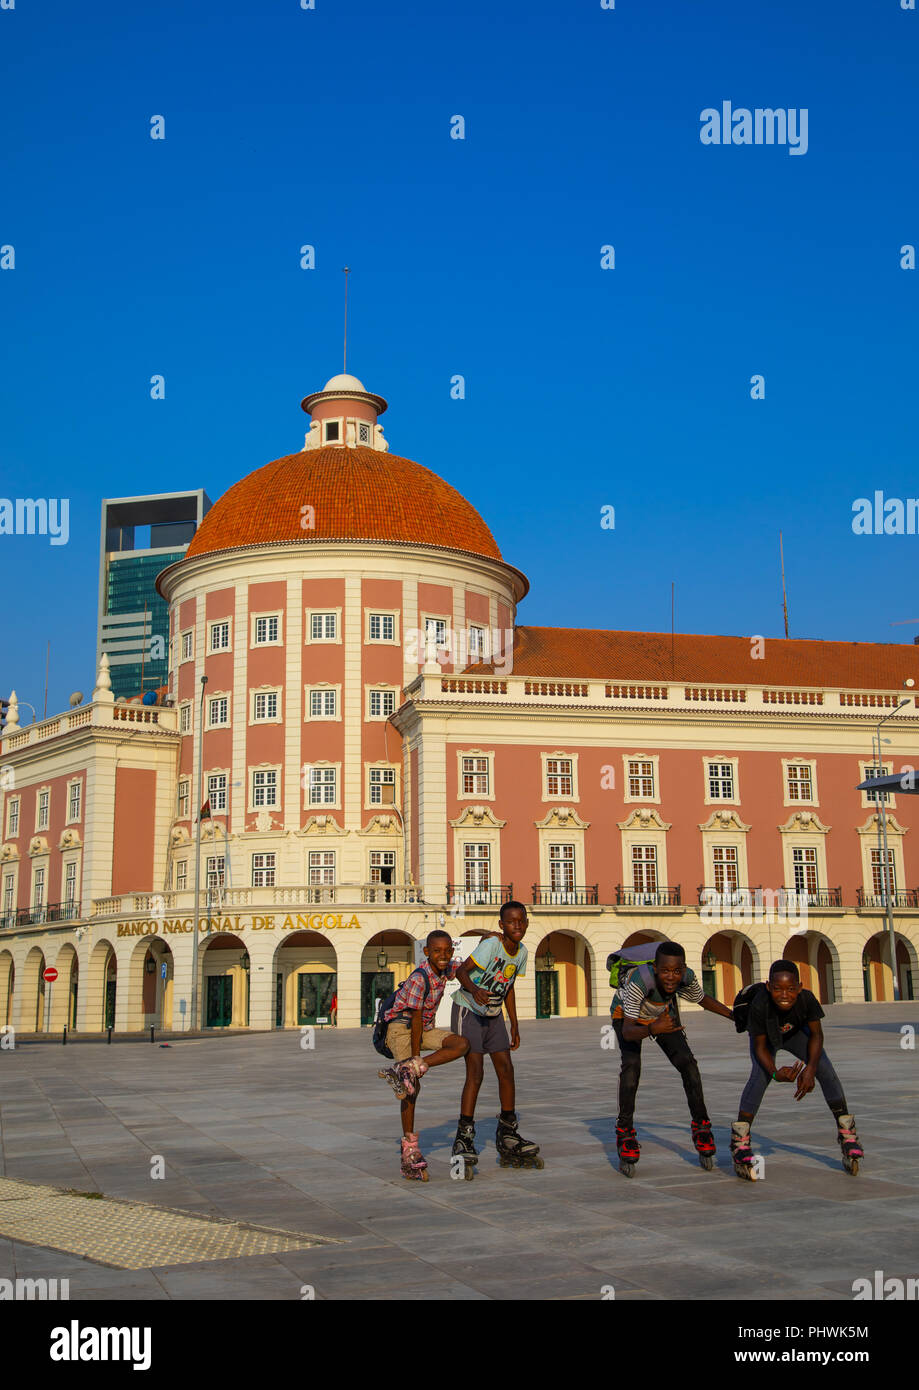 Angola teenage boys wirth roller skating in front of banco nacional de angola, Luanda Province, Luanda, Angola - Stock Image